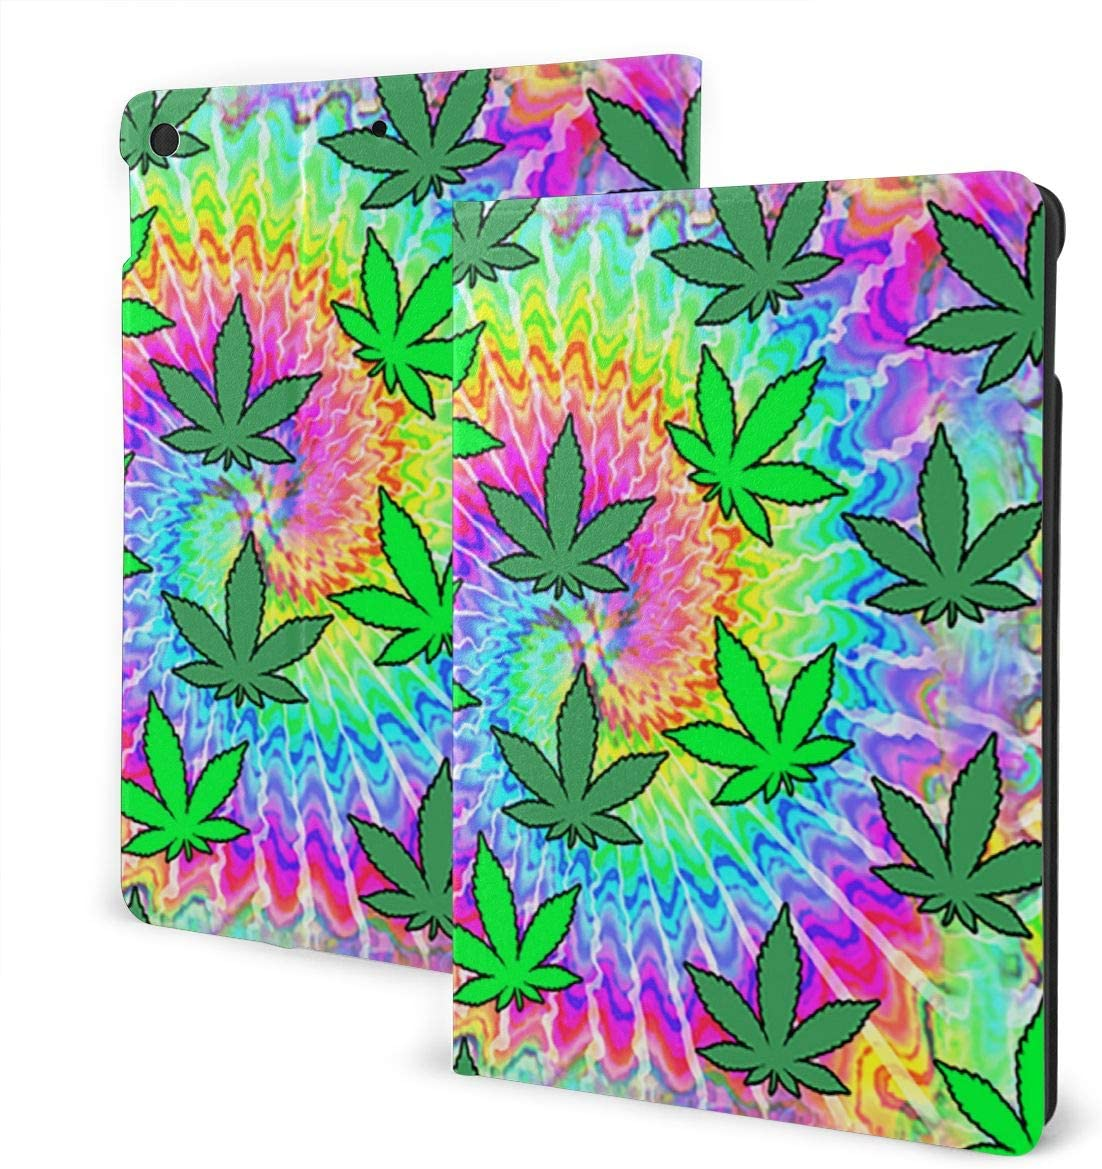 Rspoonflower Free shipping anywhere in the nation Weed Tie Dye Case for 8th Generation 10. iPad 7th Free Shipping Cheap Bargain Gift